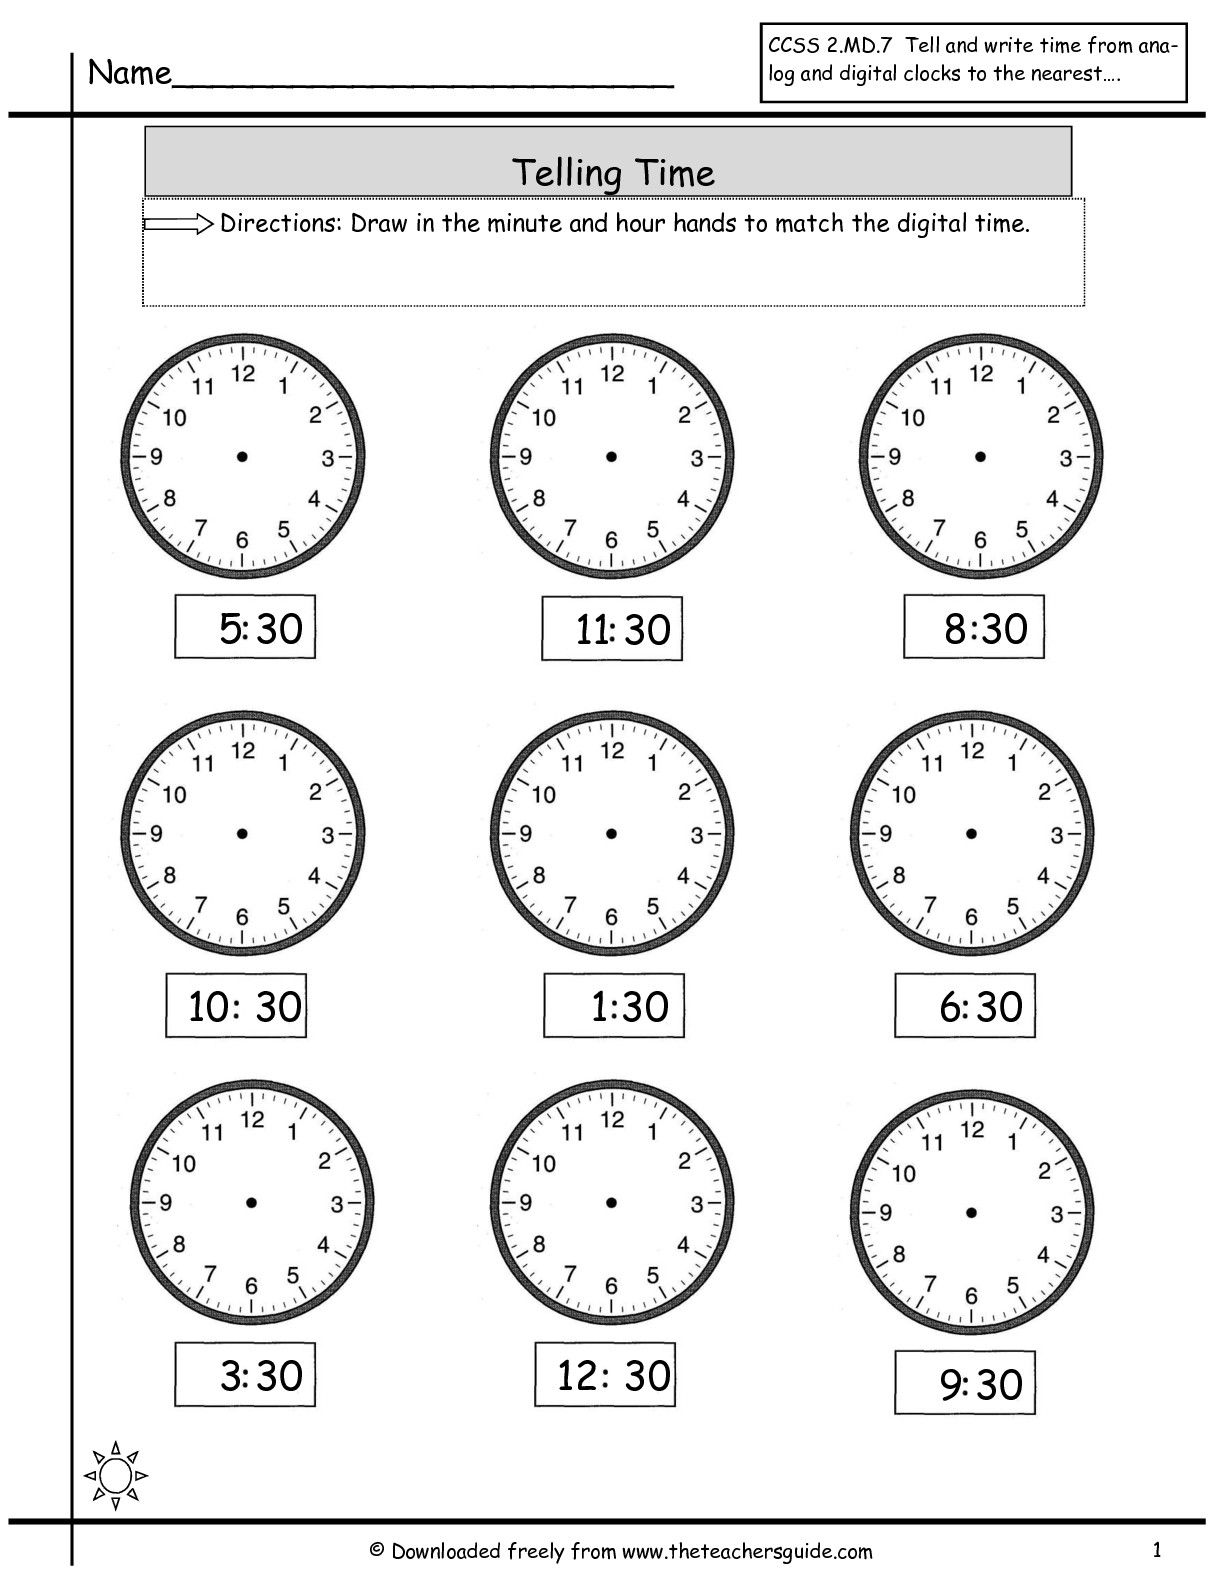 telling time to nearest half hour worksheet math clock worksheets kids math worksheets. Black Bedroom Furniture Sets. Home Design Ideas